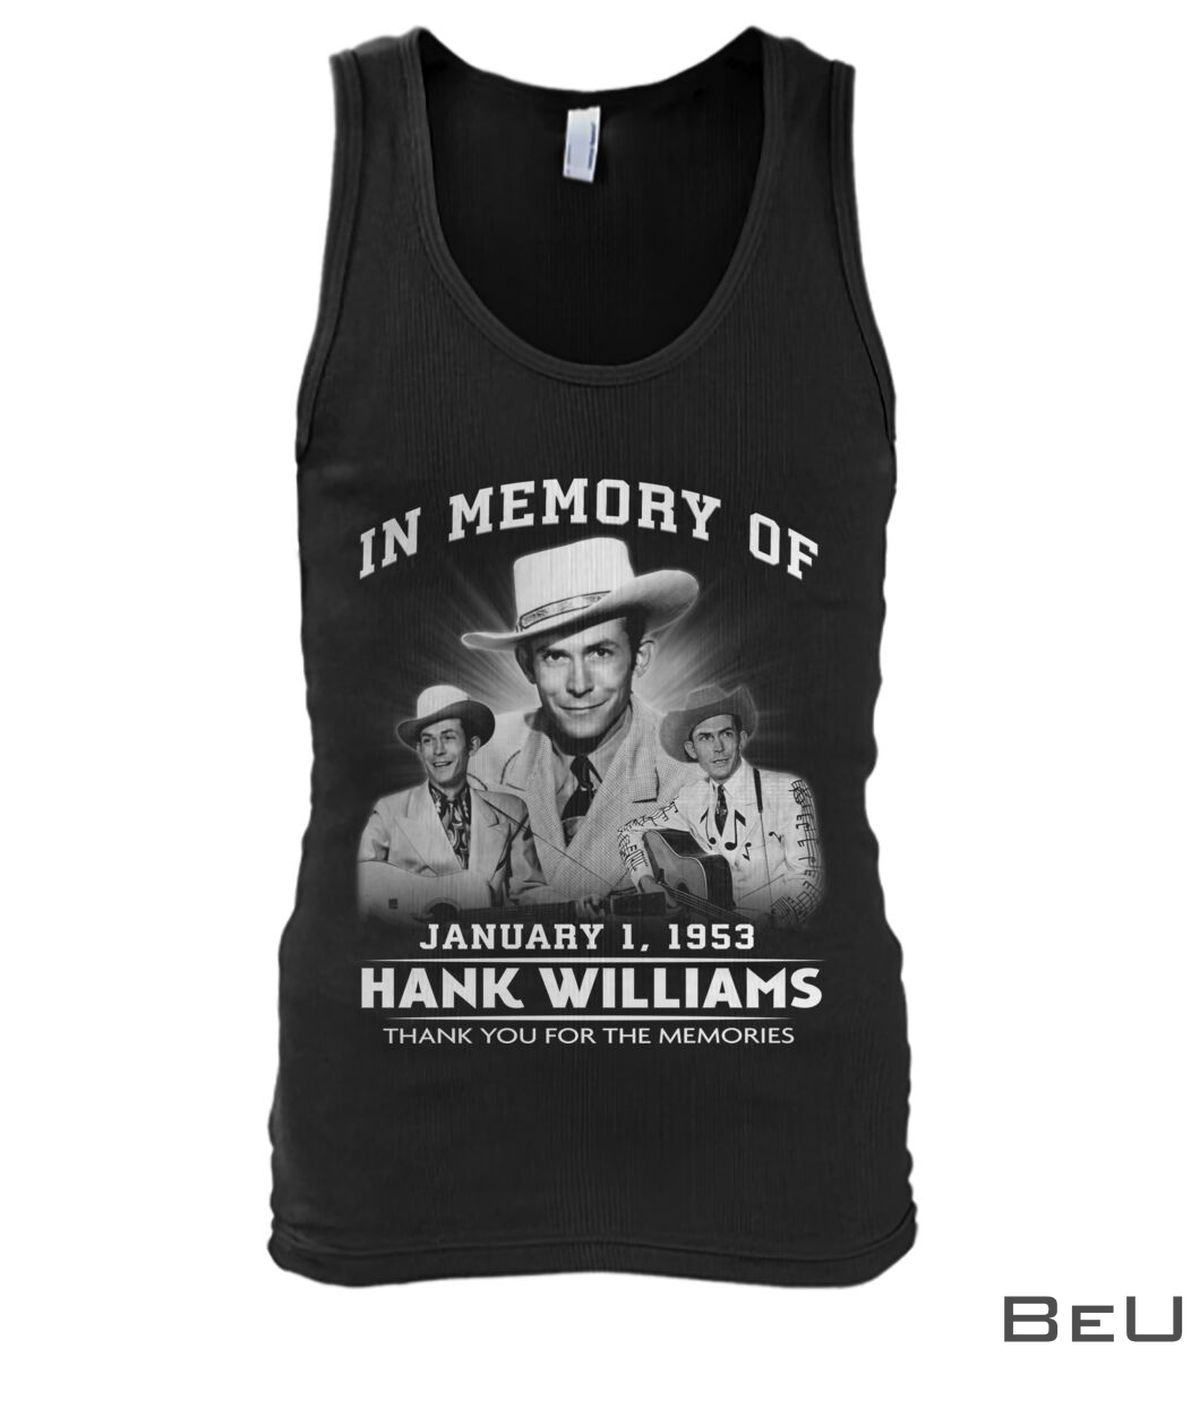 In Memory Of January 1 1953 Hank Williams Thank You For The Memories Shirtx